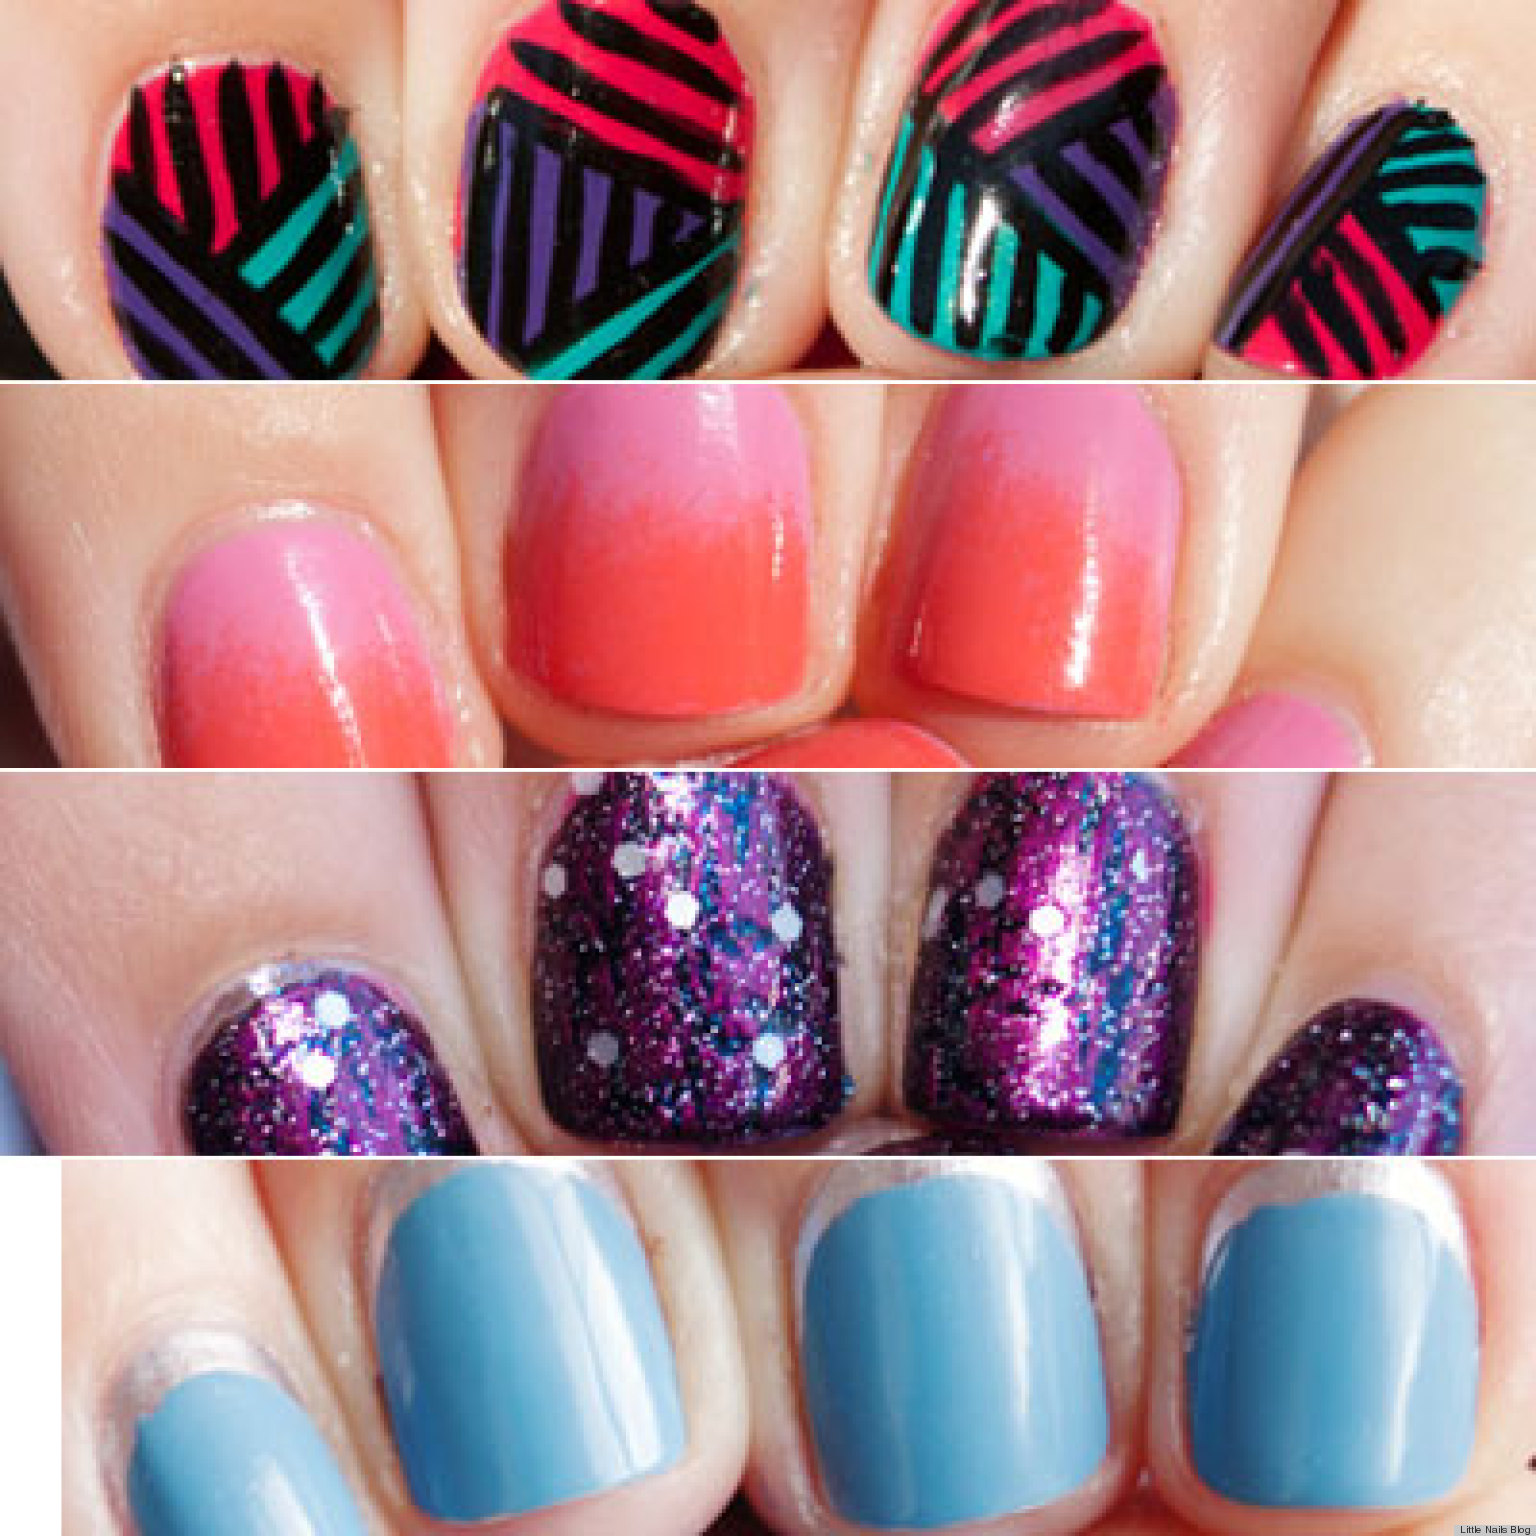 13 Nail Art Ideas For Y Tiny Finger Photos Huffpost Designs Short Nails